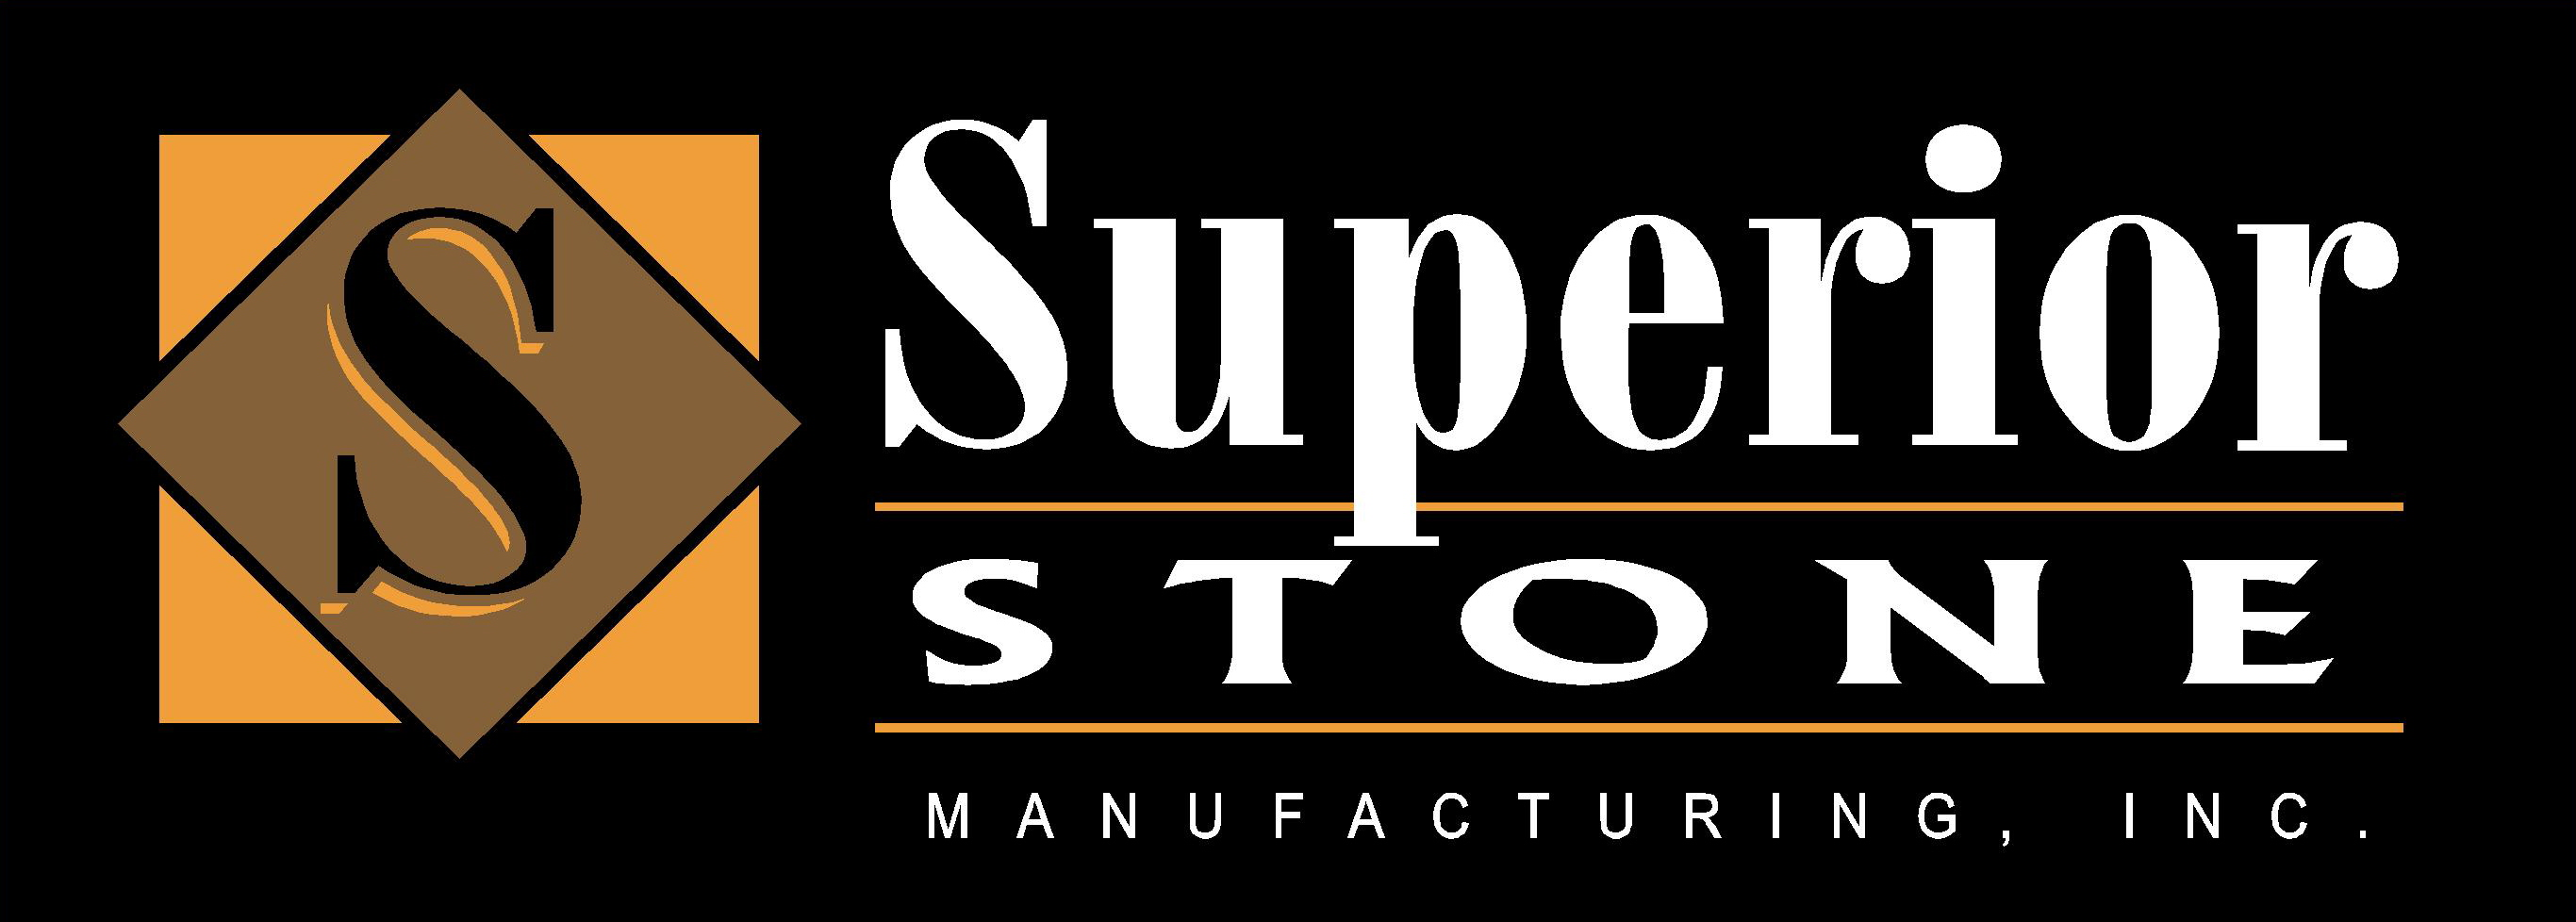 Superior Stone Manufacturing A Manufacturer Of Quality